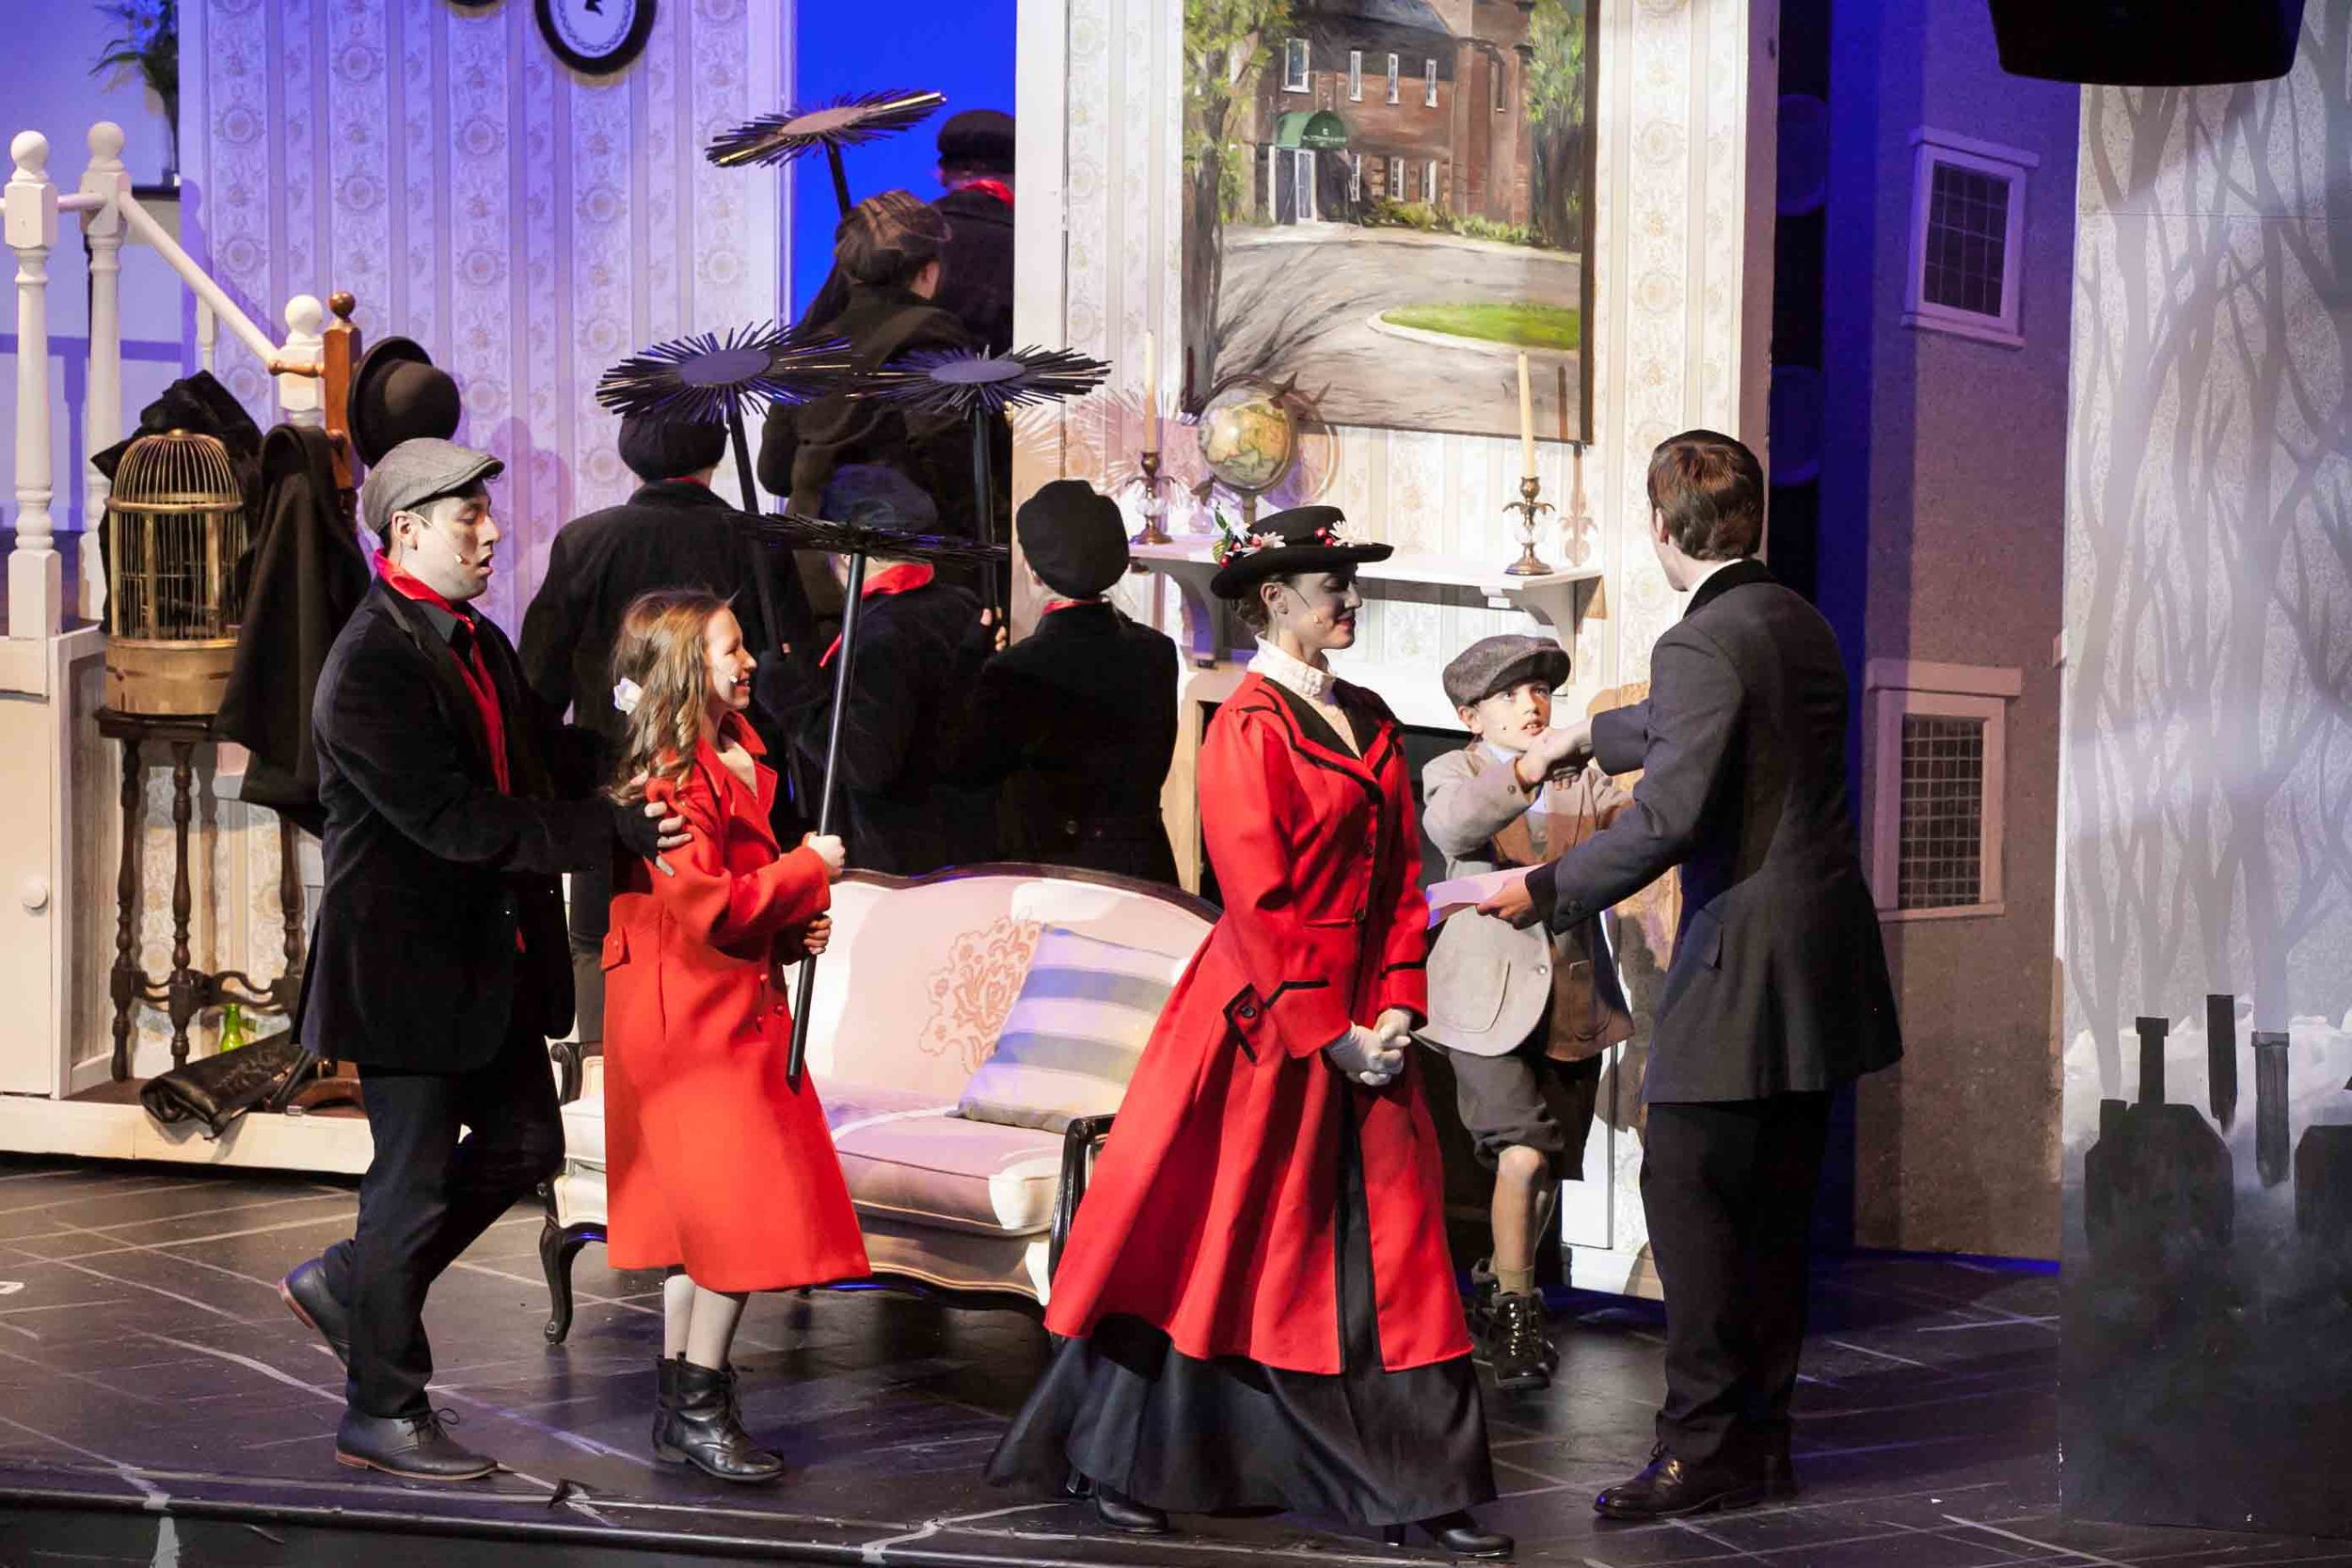 2-4-16 Mary Poppins Proper Cast 0409.jpg